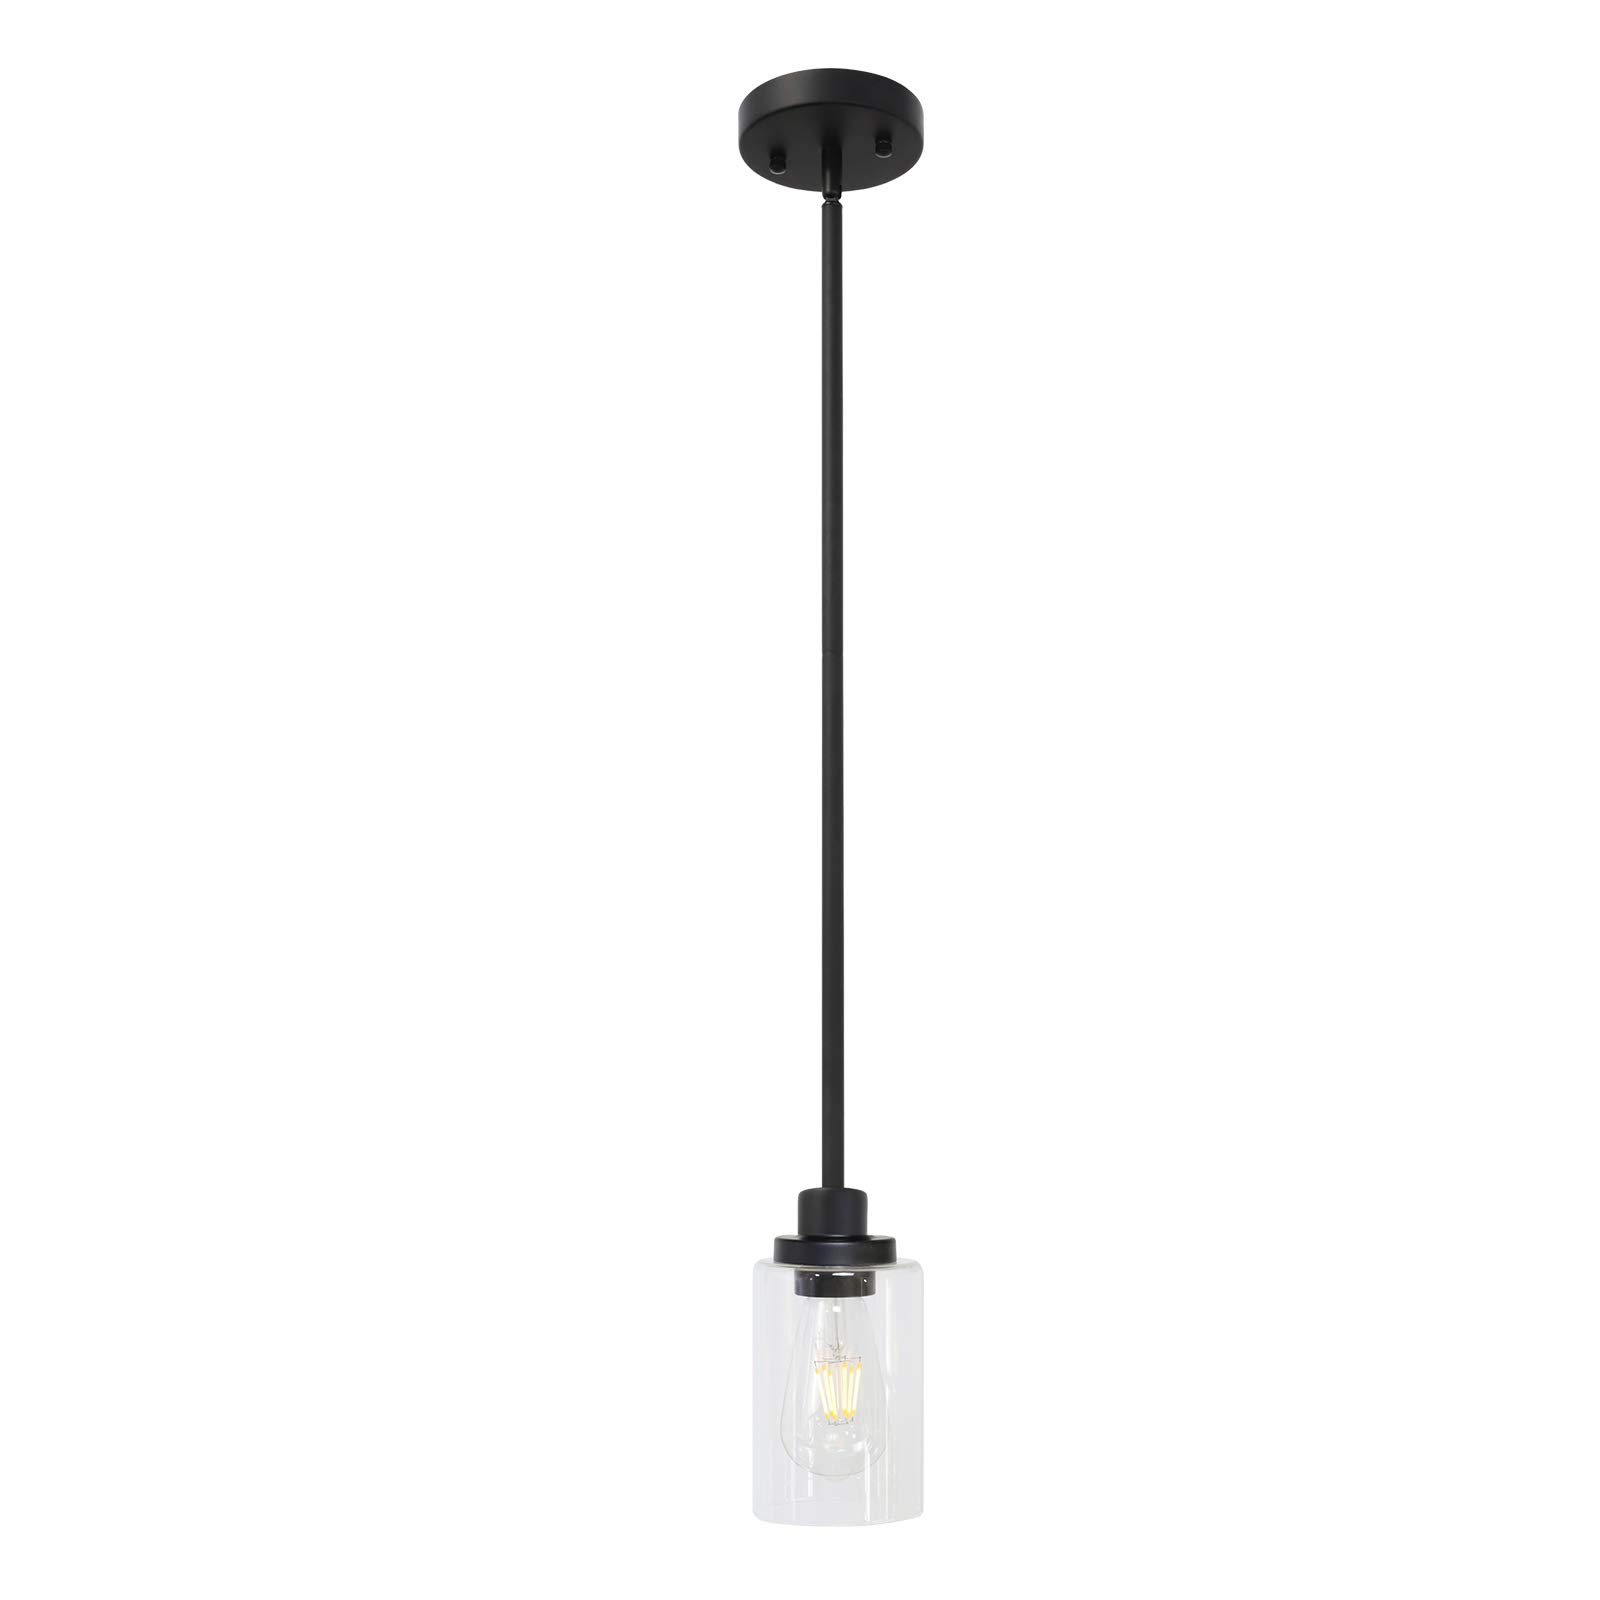 Todoluz Modern 1 Light Black Kitchen Island Light With Clear Glass Shade Single Pendant Light For Living Room Decoration Buy Online In Dominica At Dominica Desertcart Com Productid 203688973